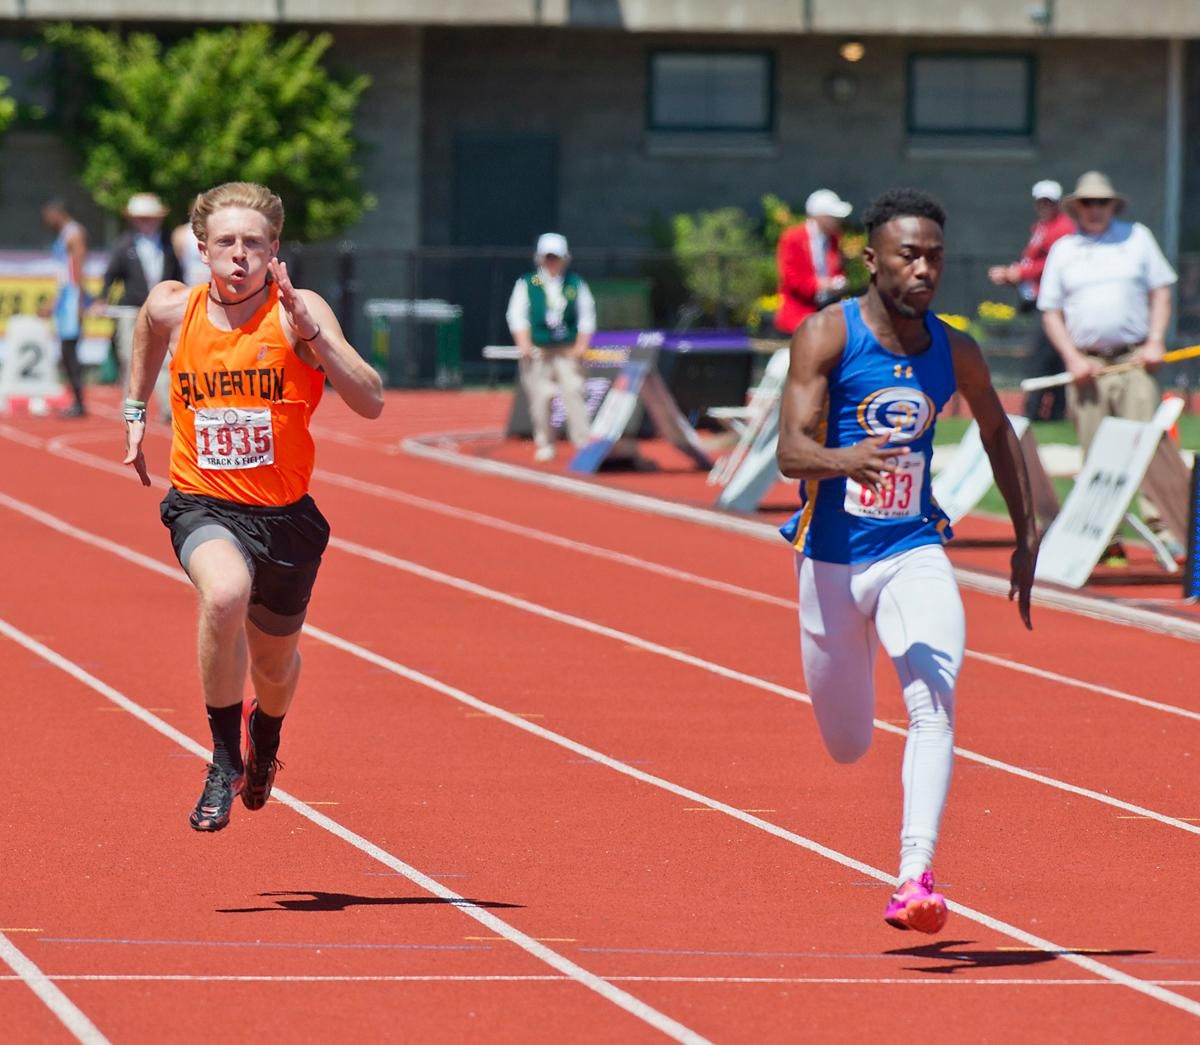 Anthony Gray wins the 5A Boys 100 meter dash with a time of 10.79  at the OSAA Track Championship at Hayward Field Saturday. Photo by Dan Morrison, Oregon News Lab